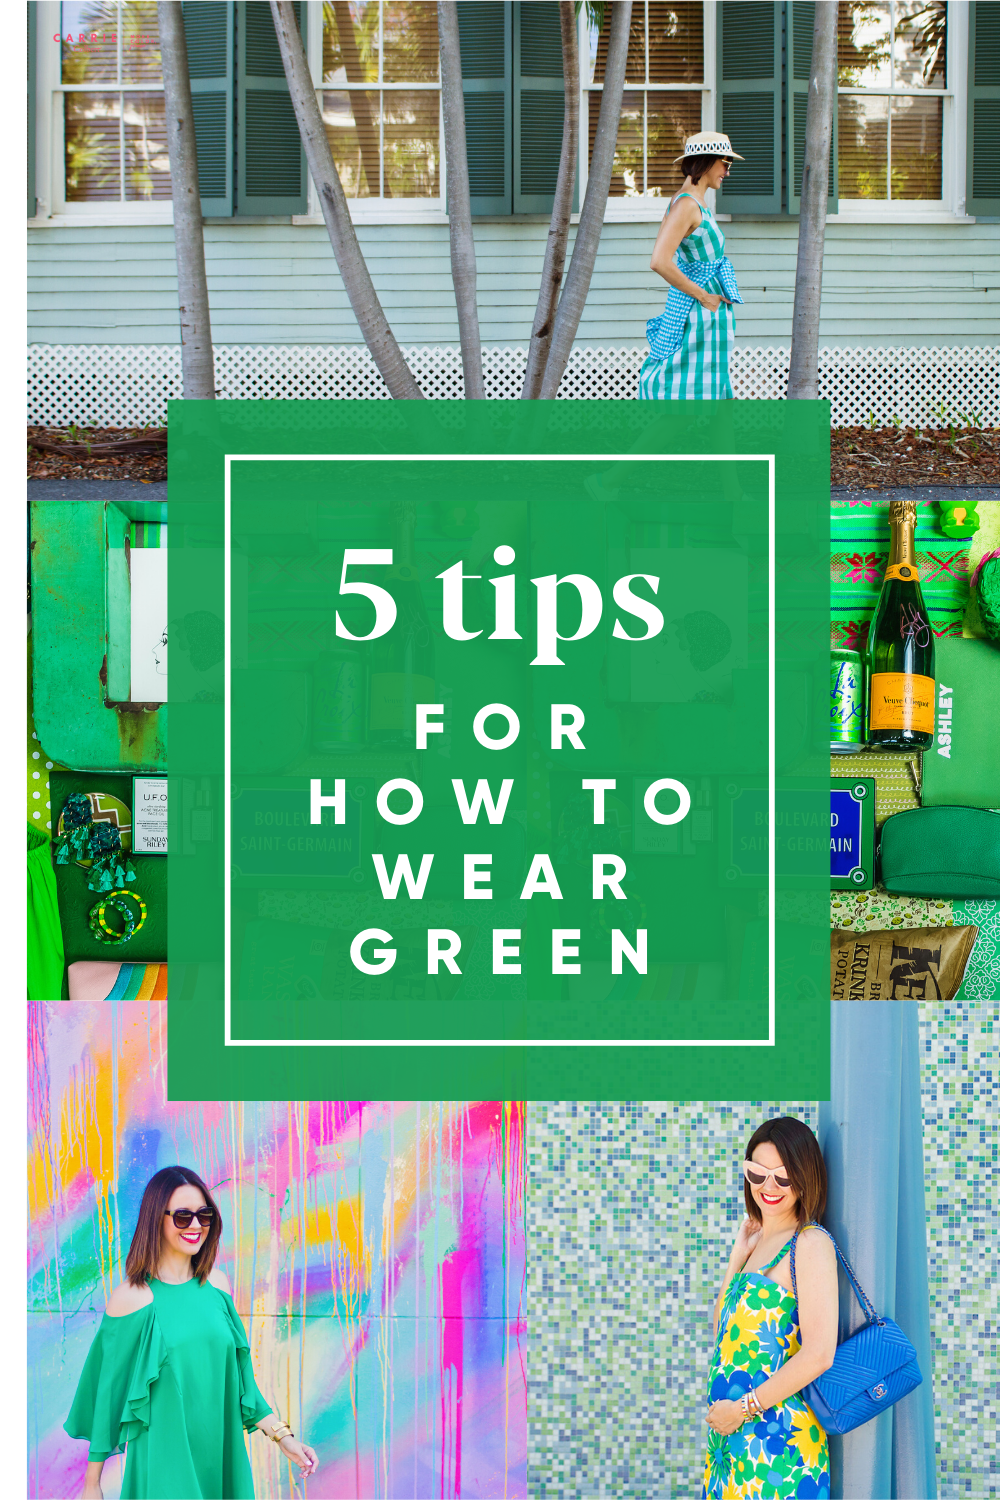 5 tips for wearing green